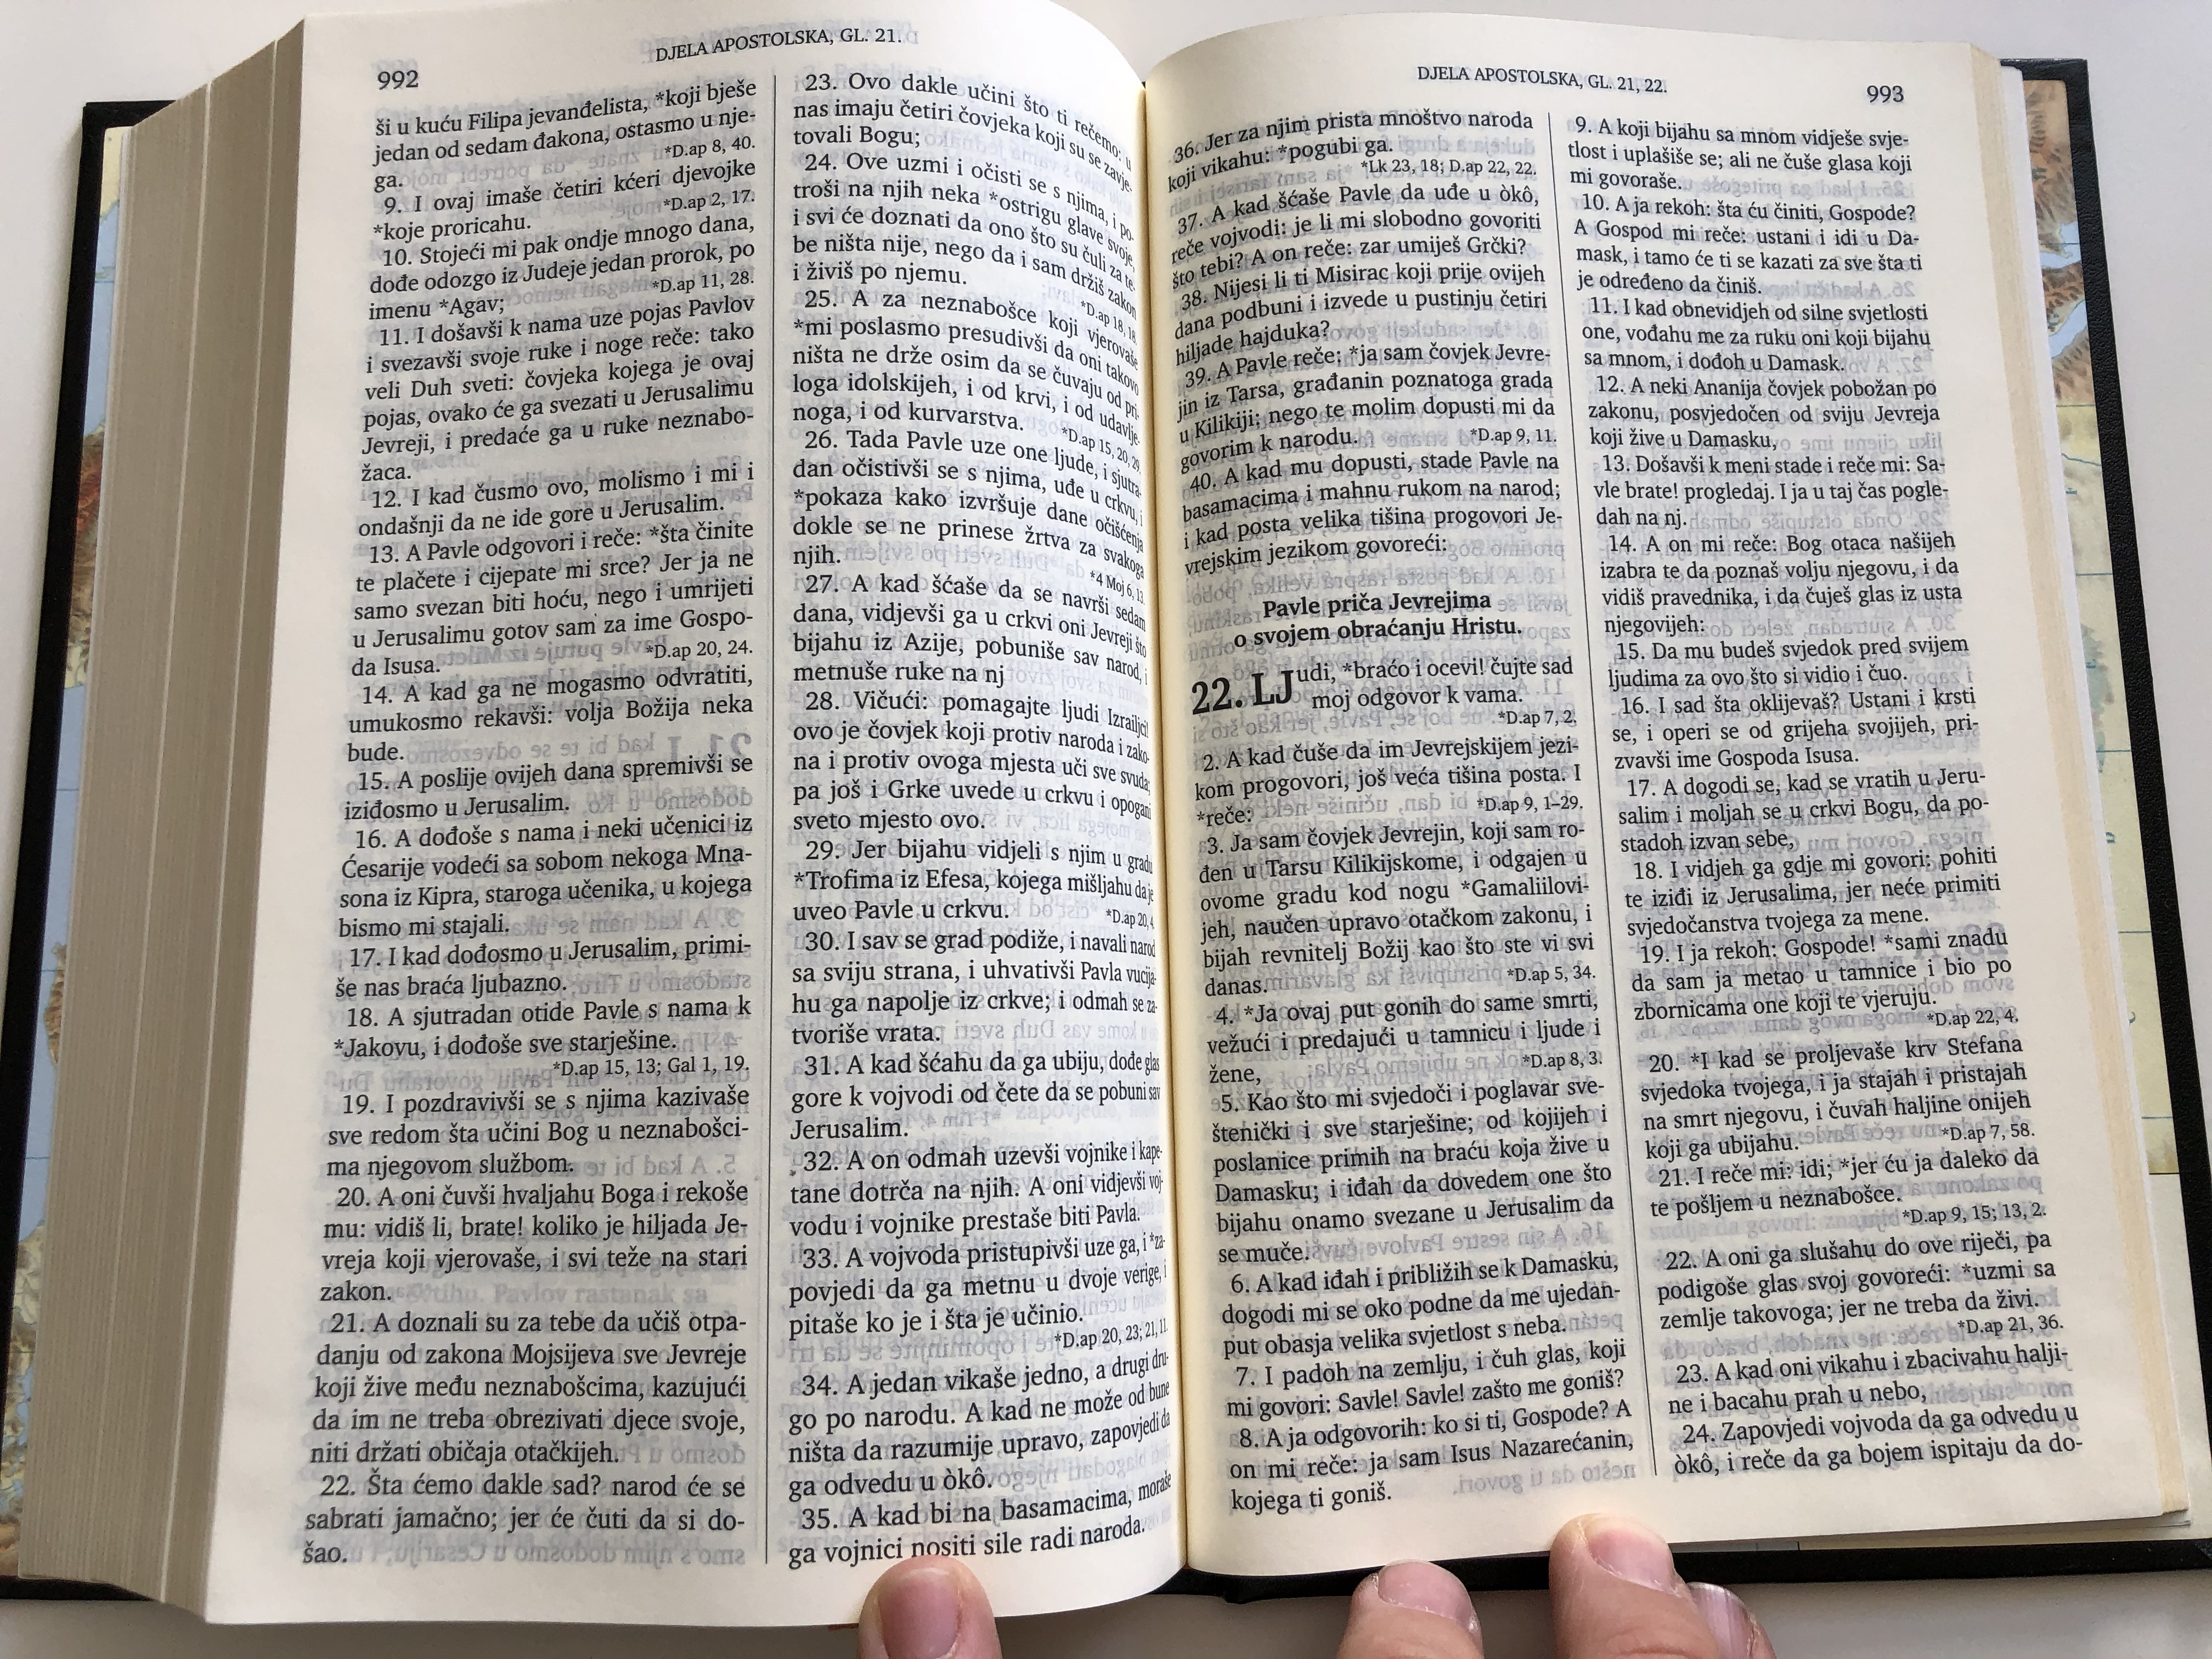 sveto-pismo-serbian-holy-bible-dani-i-karad-i-translation-hardcover-2017-serbian-bible-society-10.jpg